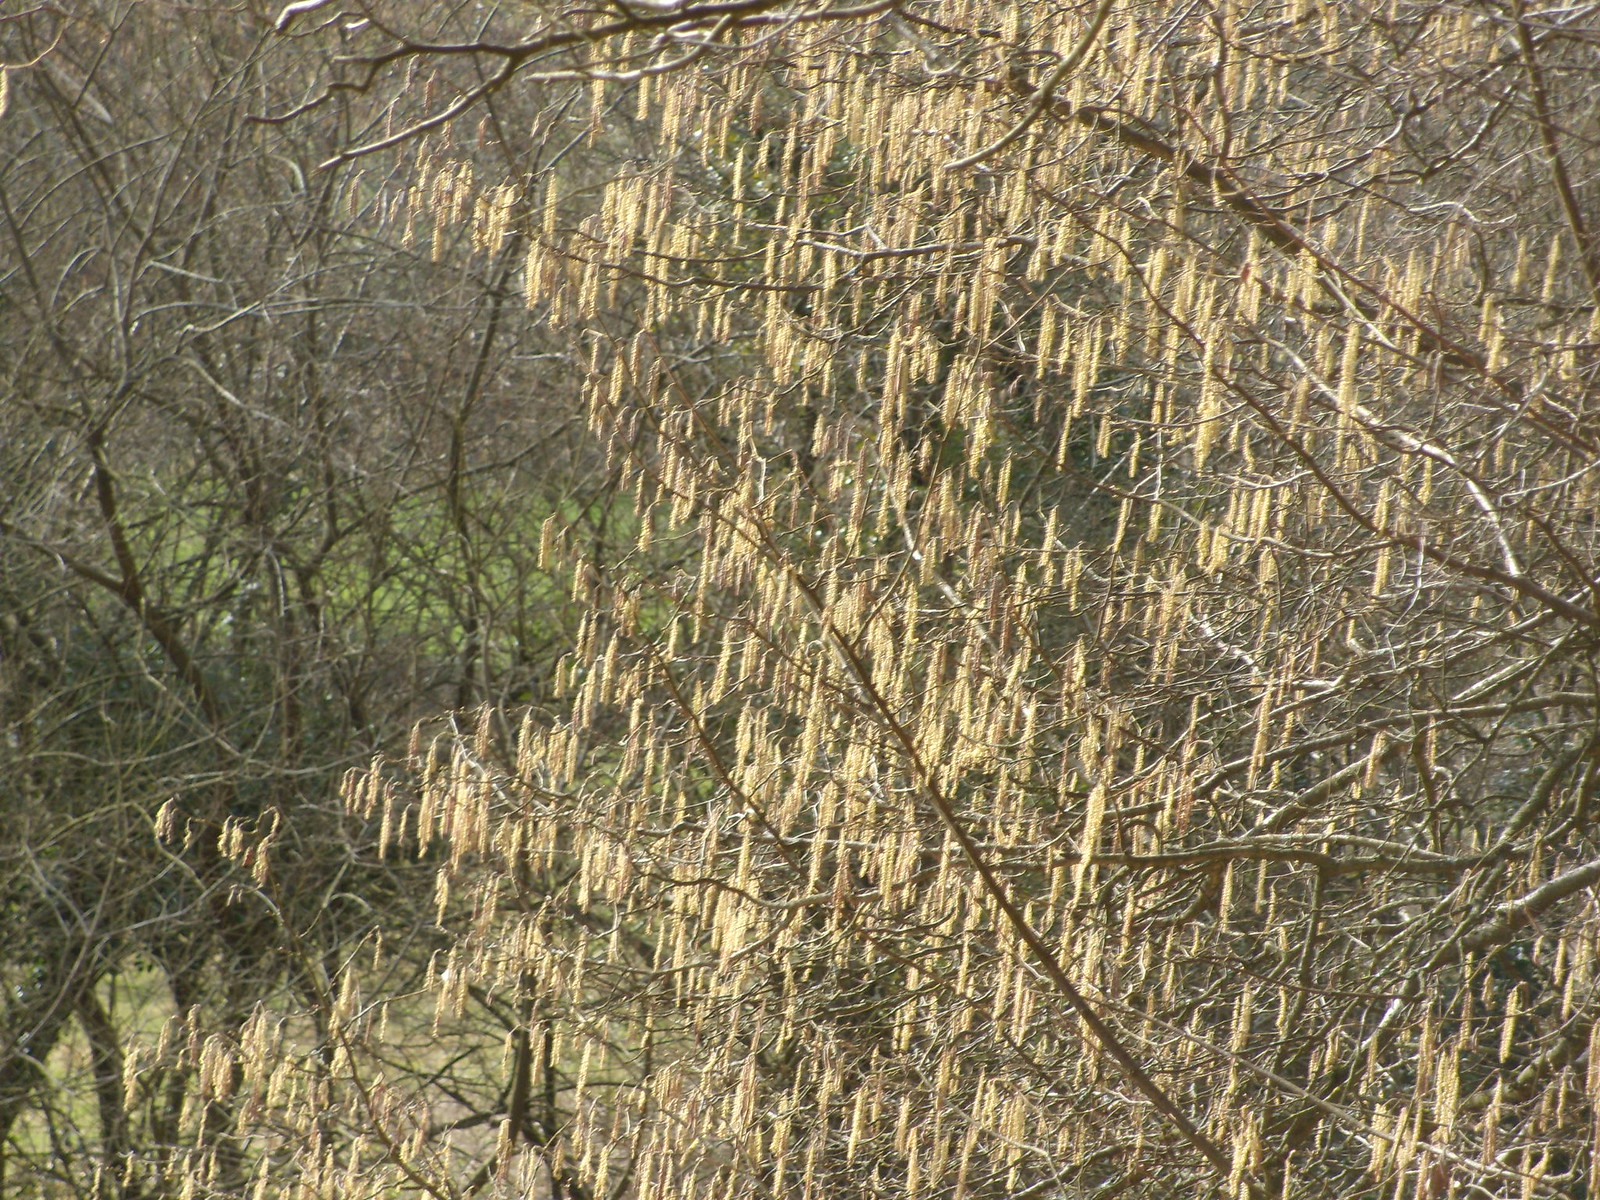 Catkins Petersfield to Liss